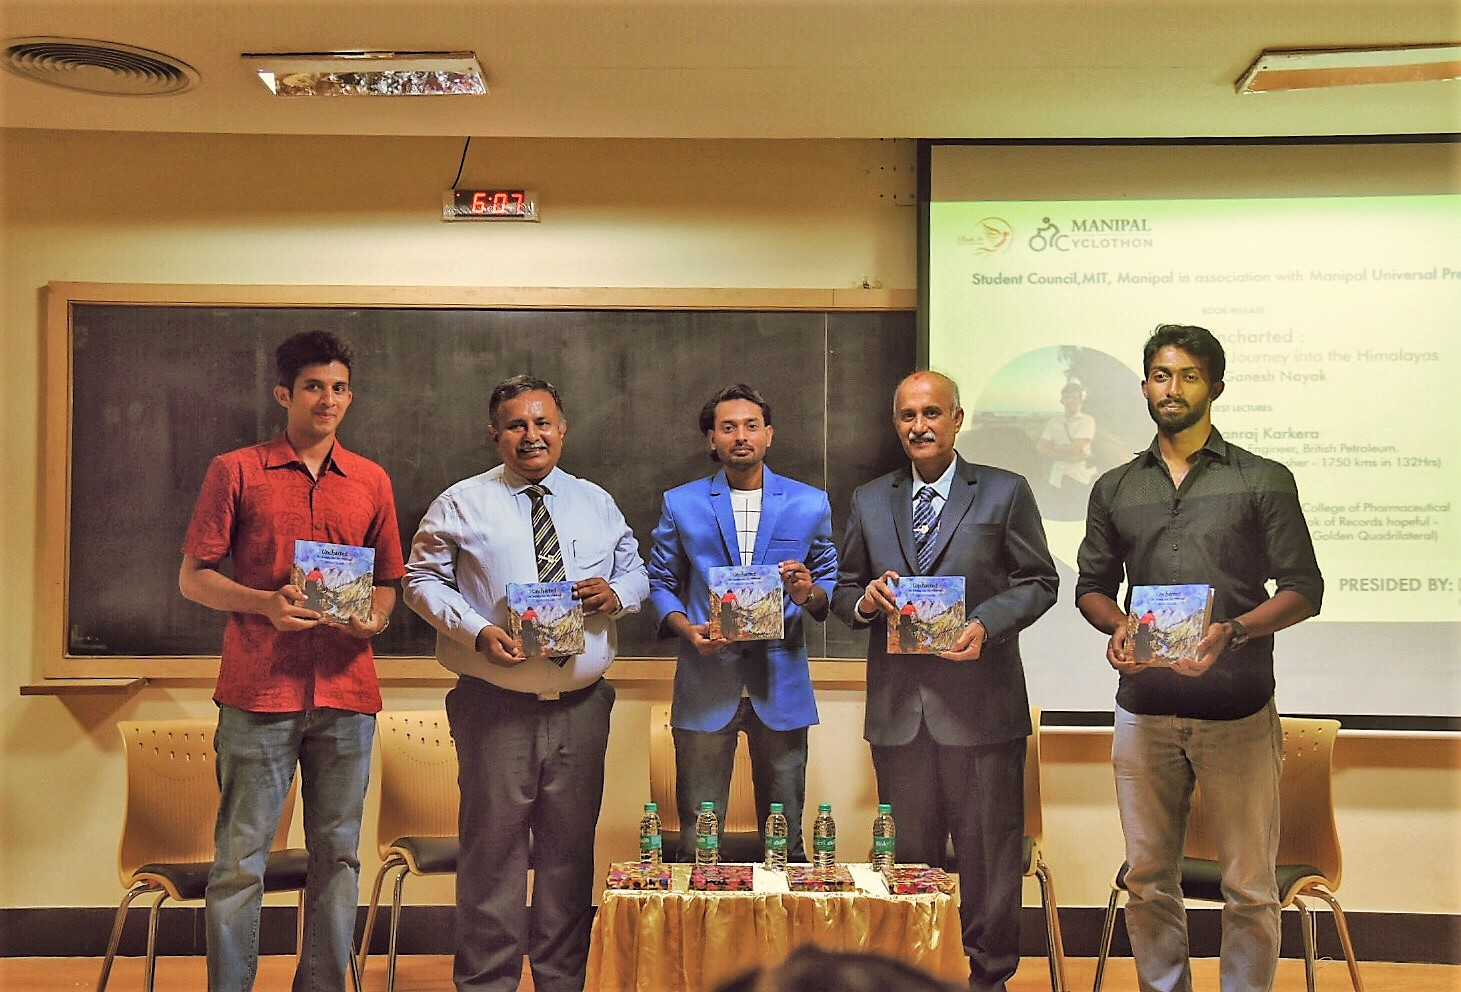 MIT faculty's book on journey into Himalayas released